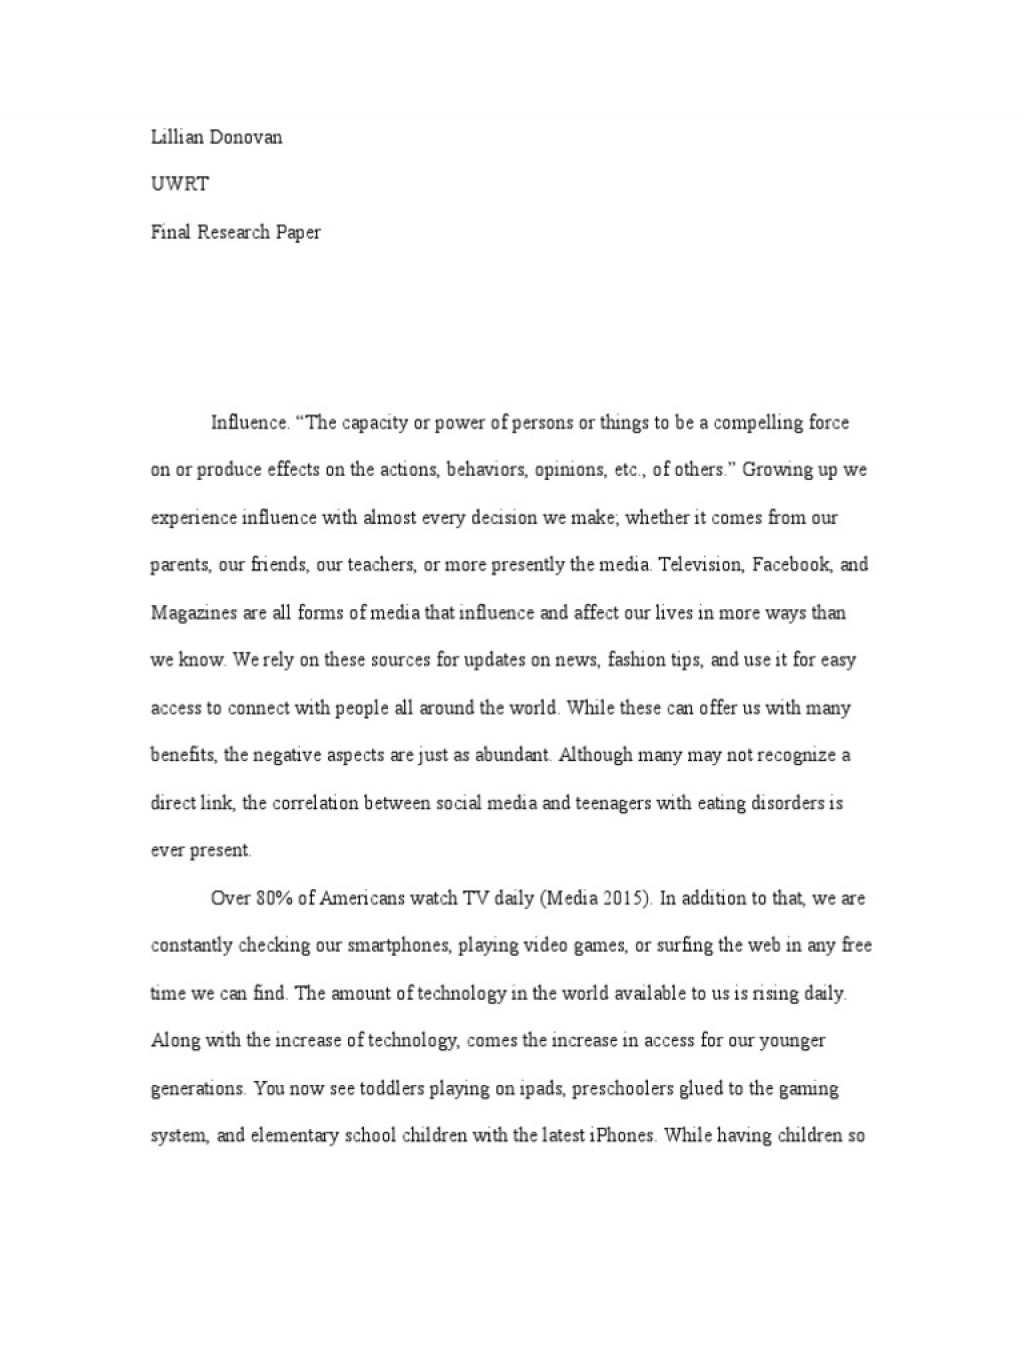 004 Eating Disorders And Media Research Paper Free Papers Wondrous On Large